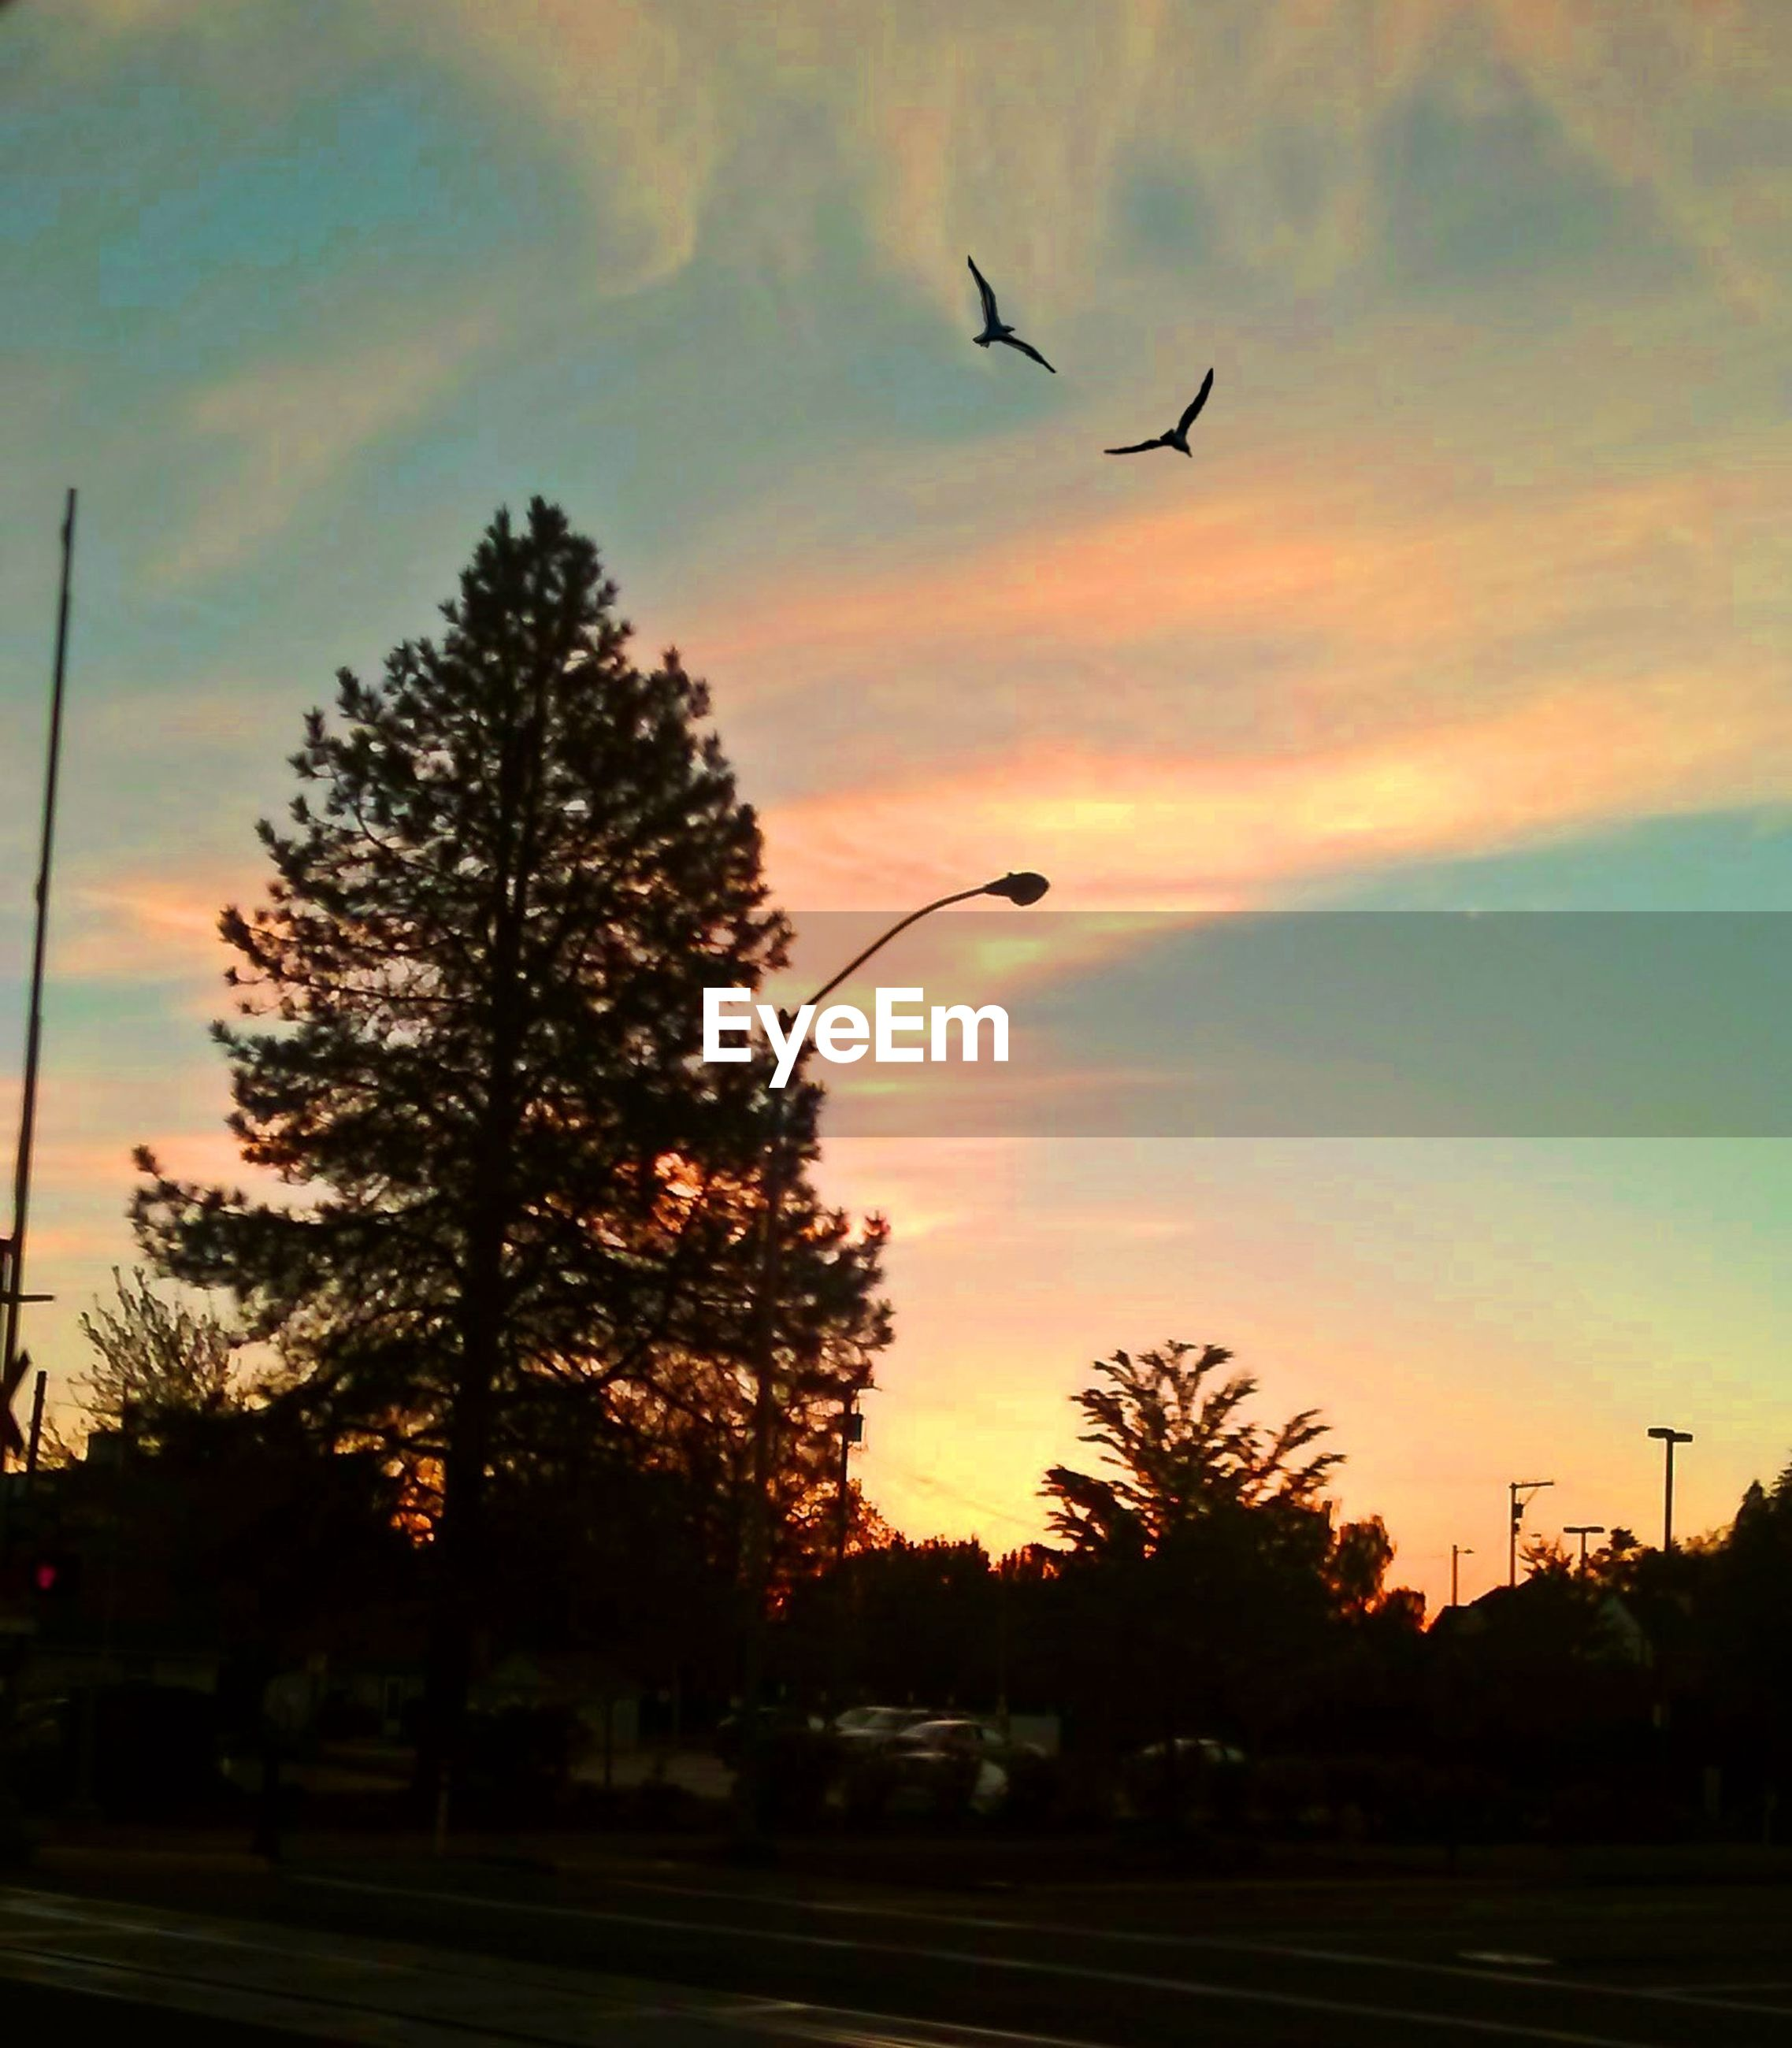 sunset, sky, tree, plant, silhouette, orange color, bird, animal themes, beauty in nature, nature, vertebrate, animal, flying, cloud - sky, animals in the wild, no people, animal wildlife, transportation, one animal, low angle view, outdoors